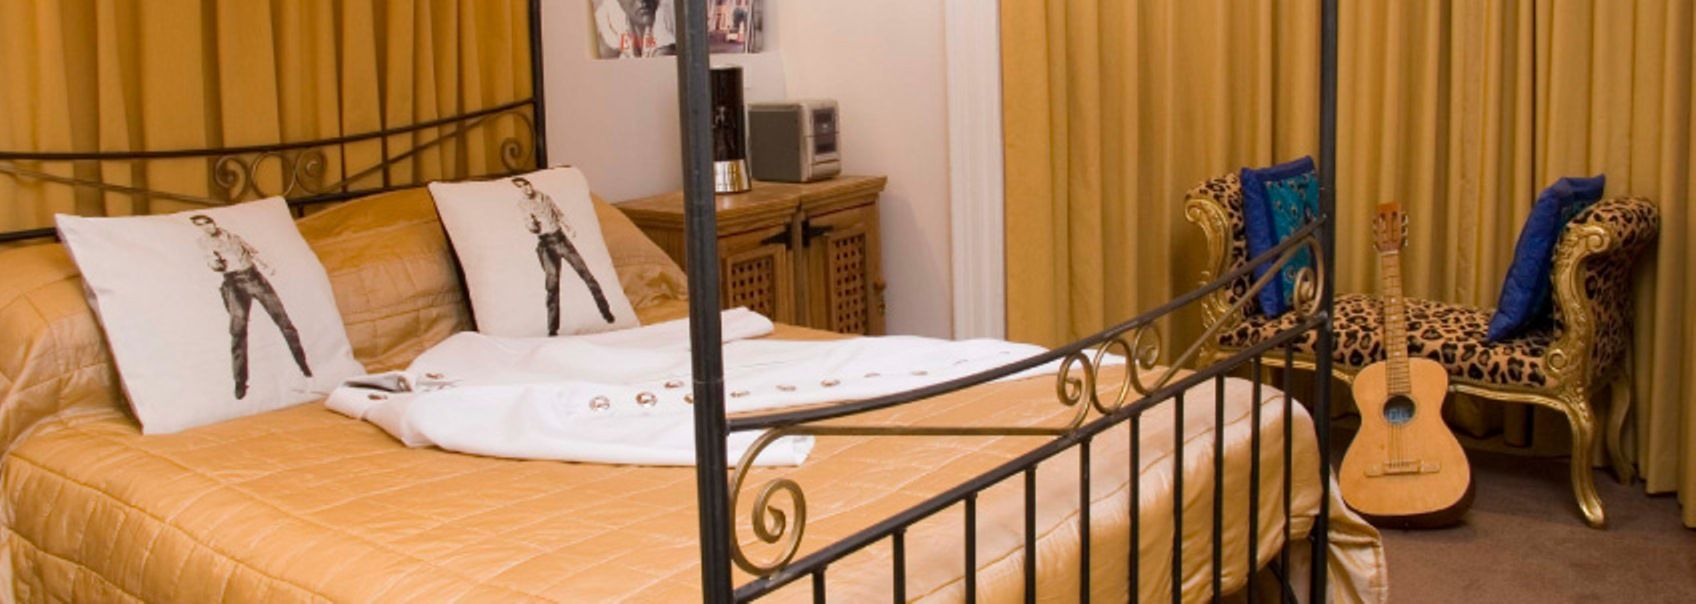 brighton luxury hotel offers something that is different from other